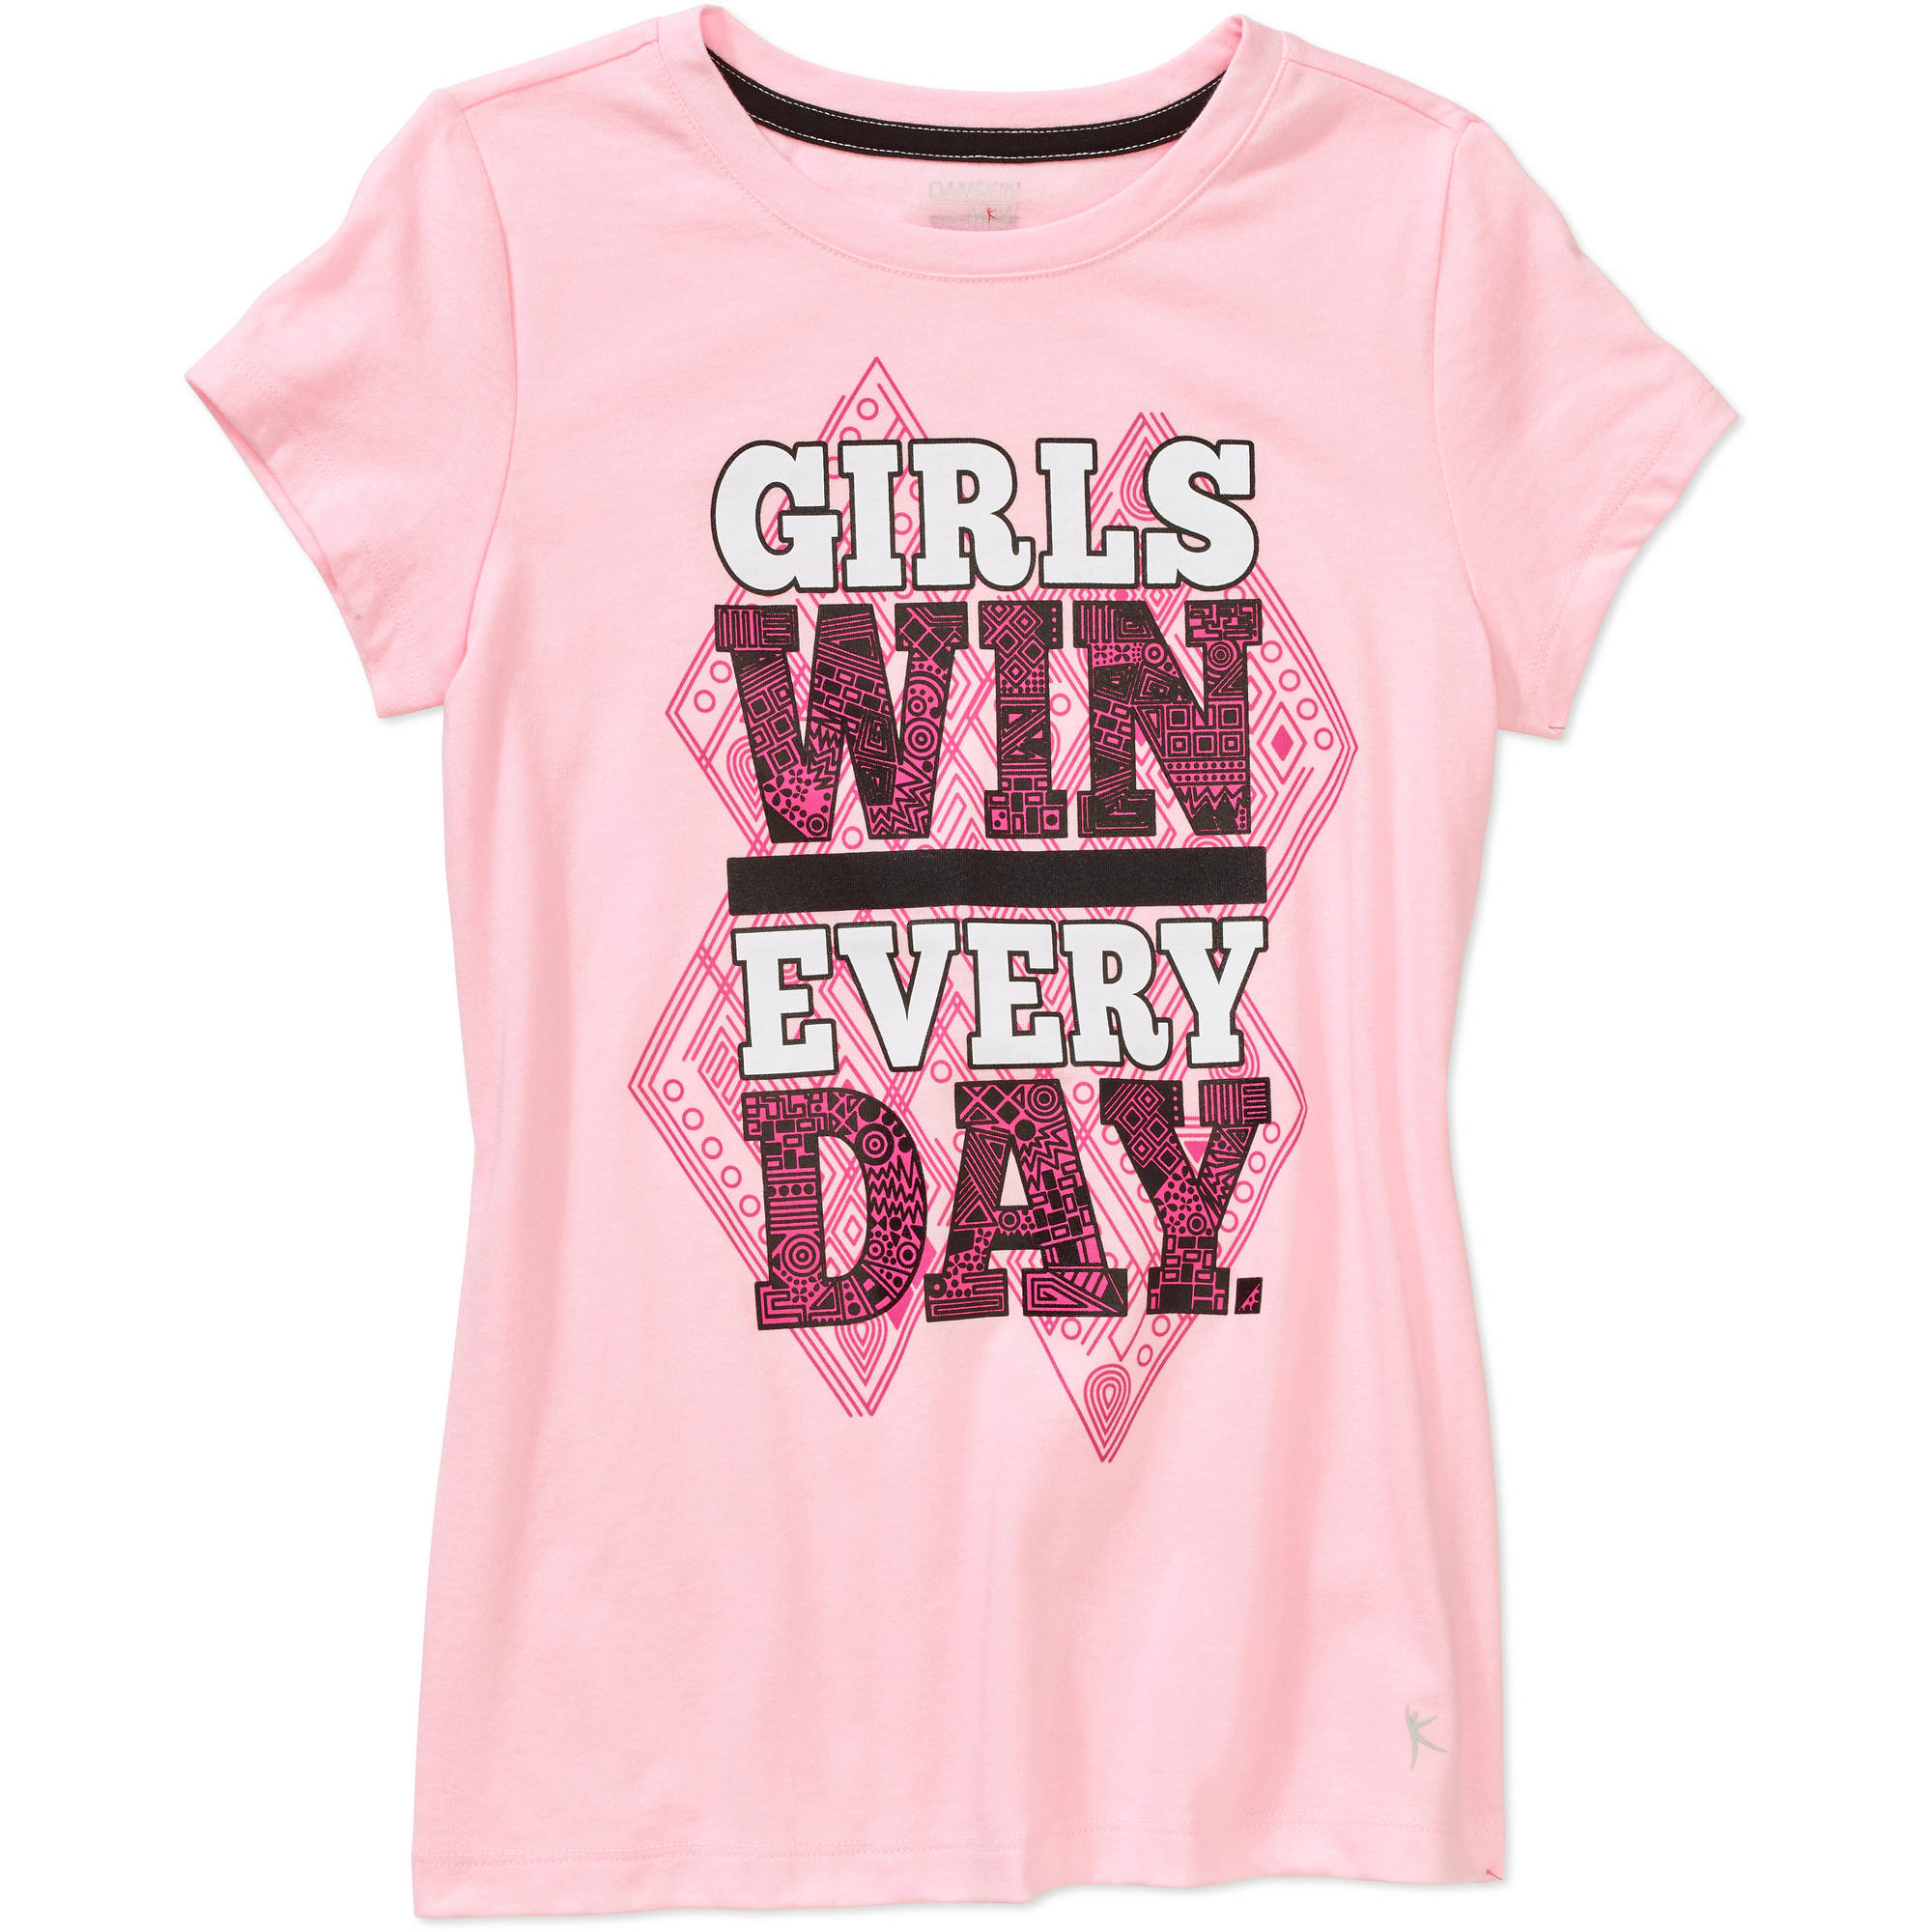 Danskin Now Girls' Graphic Cotton Tee